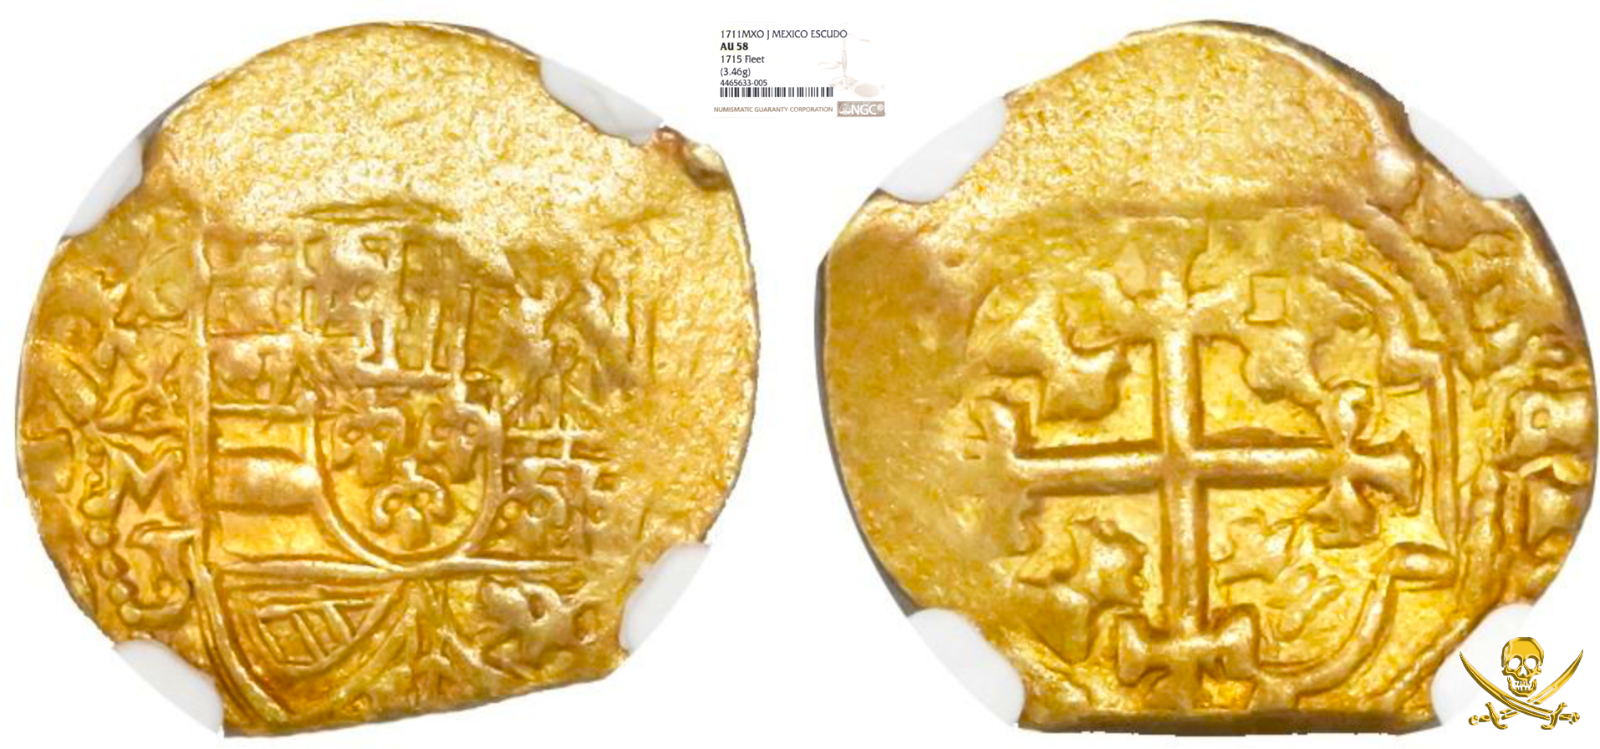 "MEXICO 1711 1 ESCUDO NGC 58 ""1715 FLEET"" SHIPWRECK PIRATE GOLD TREASURE COIN"